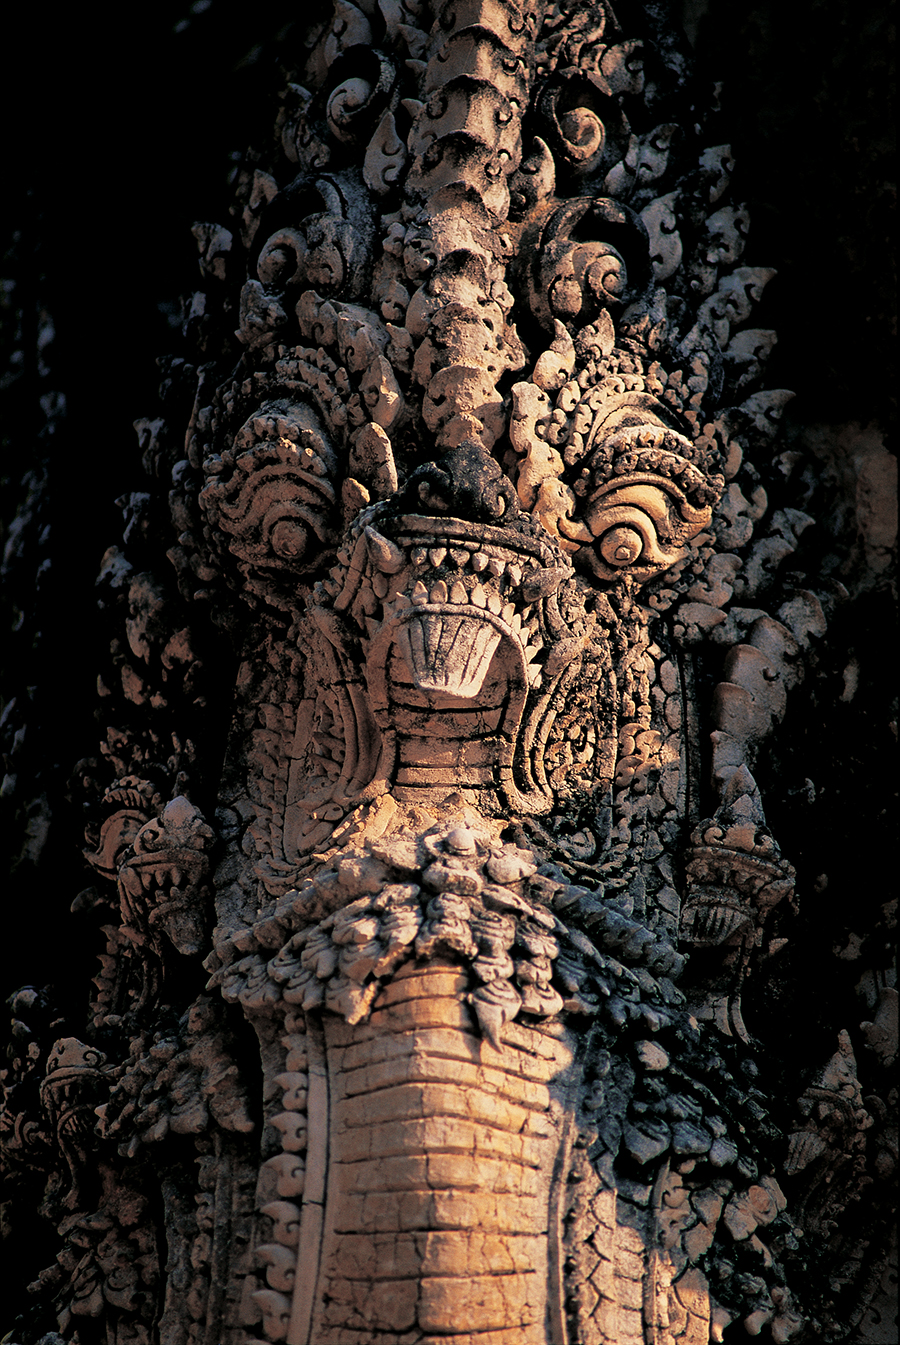 Whether it's Hindu or Buddhist, nagas are found on lintels, form balustrades, and featured above every entry in ancient temples throughout Thailand and Cambodia.  Photo: Sukhothai, Thailand